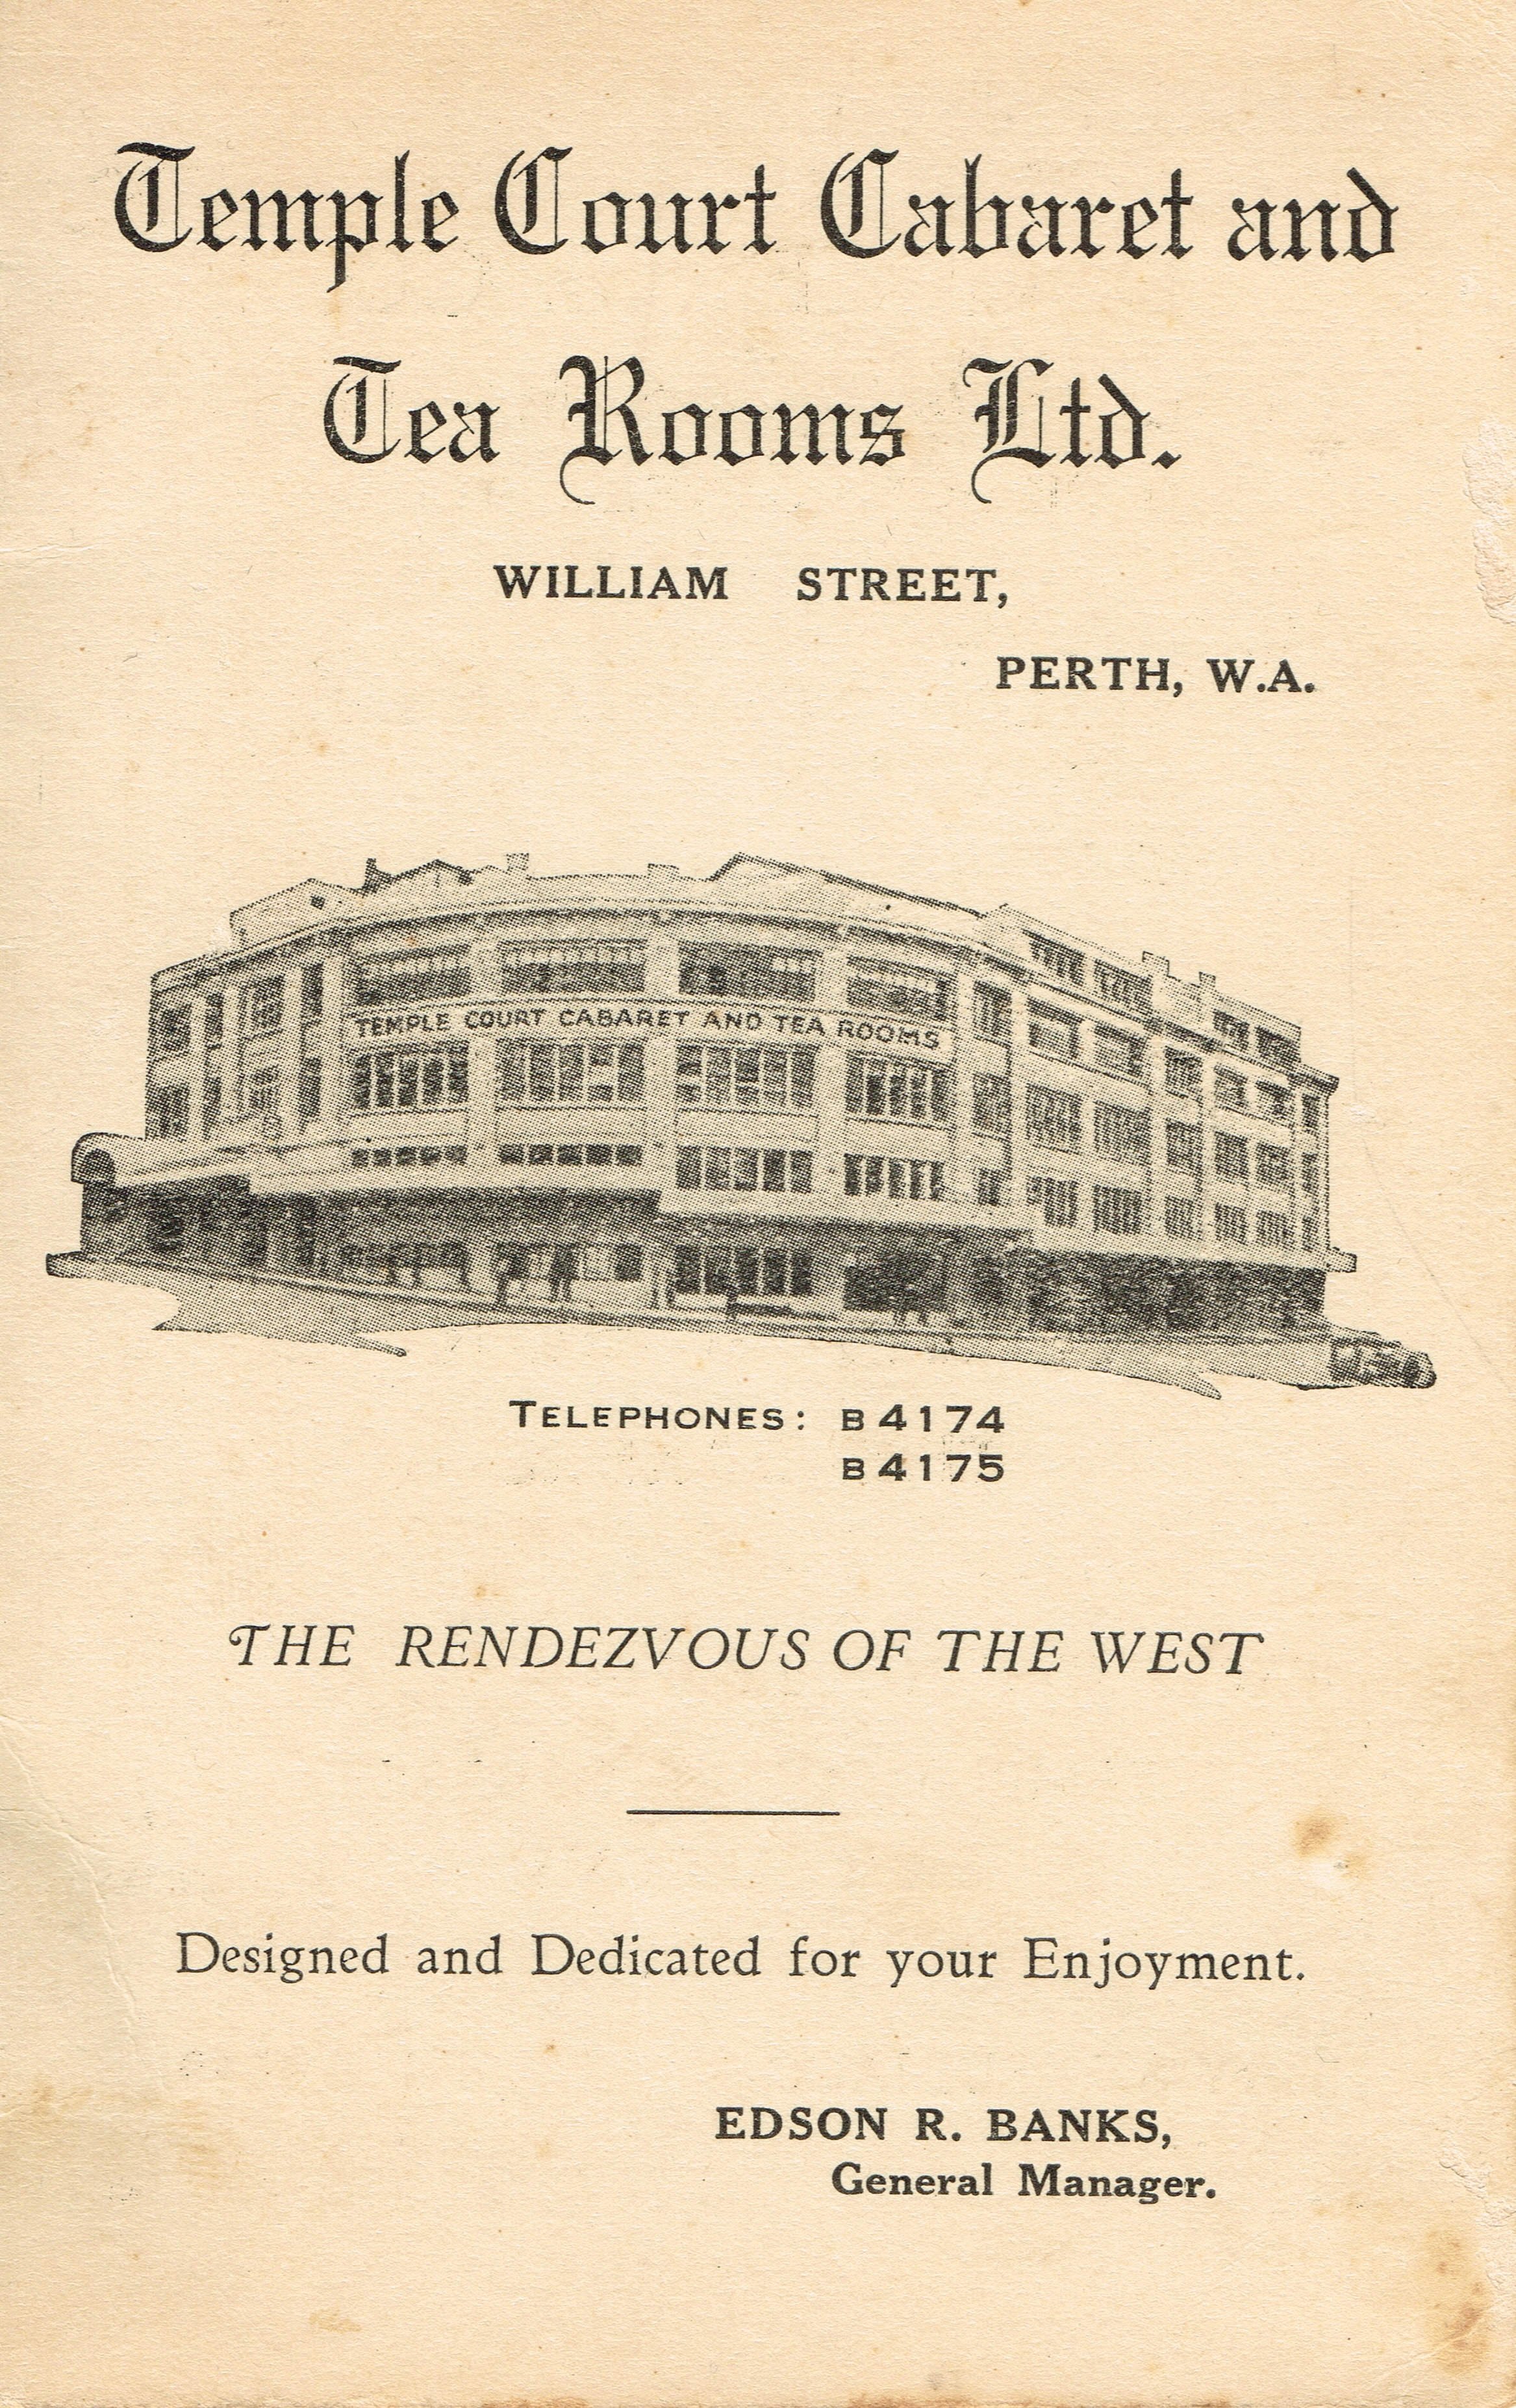 Temple Court Cabaret and Tea Rooms Ltd. : The rendezvous of the west  Edson R. Banks